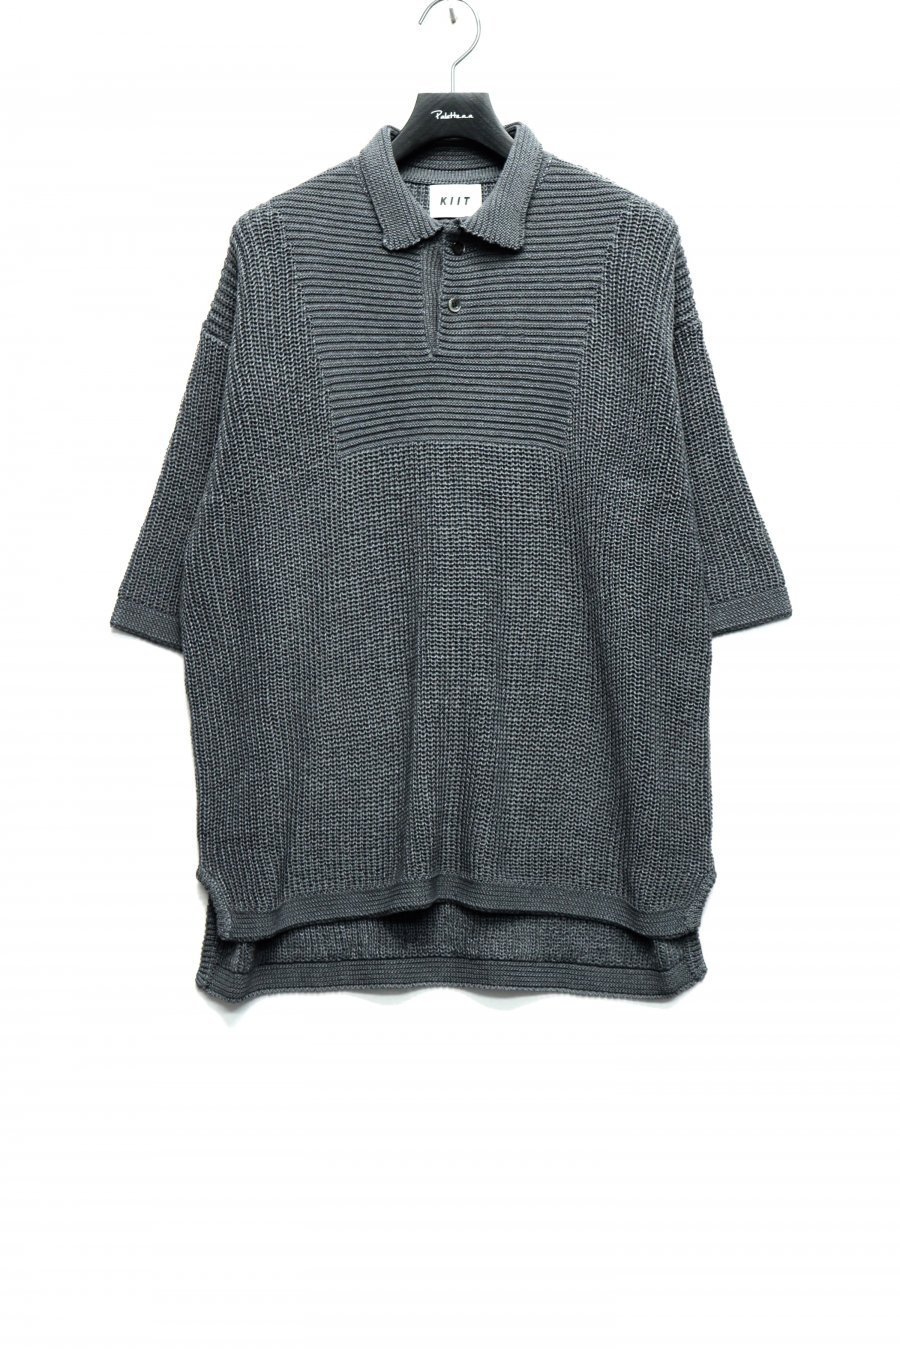 KIIT  OVERSIZED S/S KNIT POLO<img class='new_mark_img2' src='https://img.shop-pro.jp/img/new/icons15.gif' style='border:none;display:inline;margin:0px;padding:0px;width:auto;' />